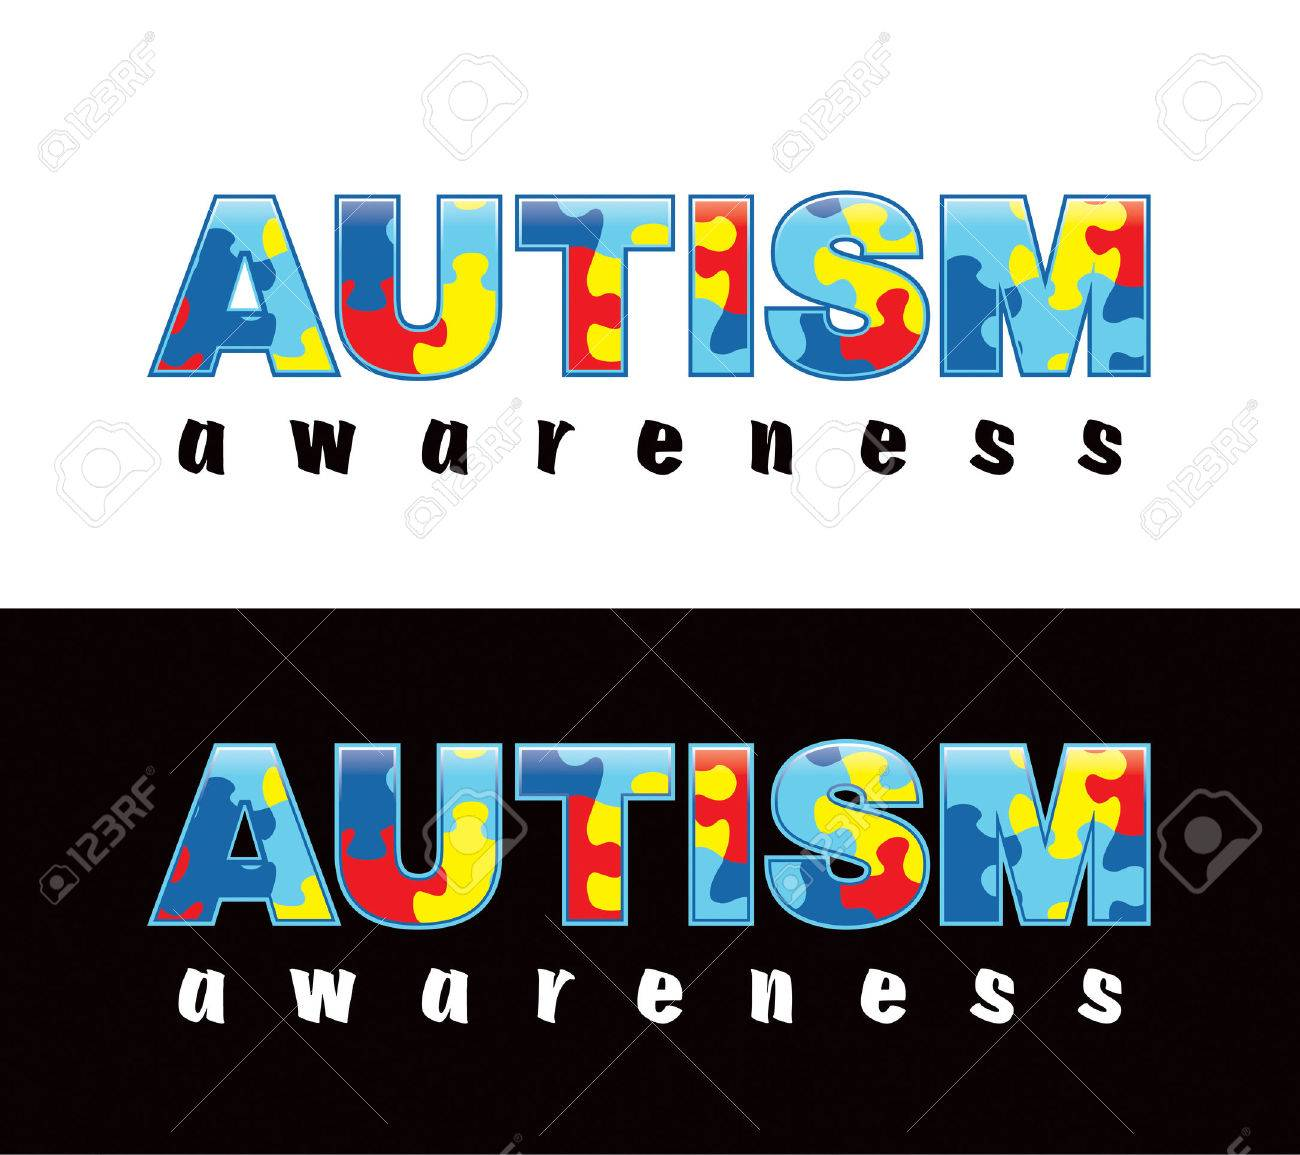 Autism images stock pictures royalty free autism photos and the phrase autism awareness written in jigsaw puzzle pieces autism awareness colors and symbols biocorpaavc